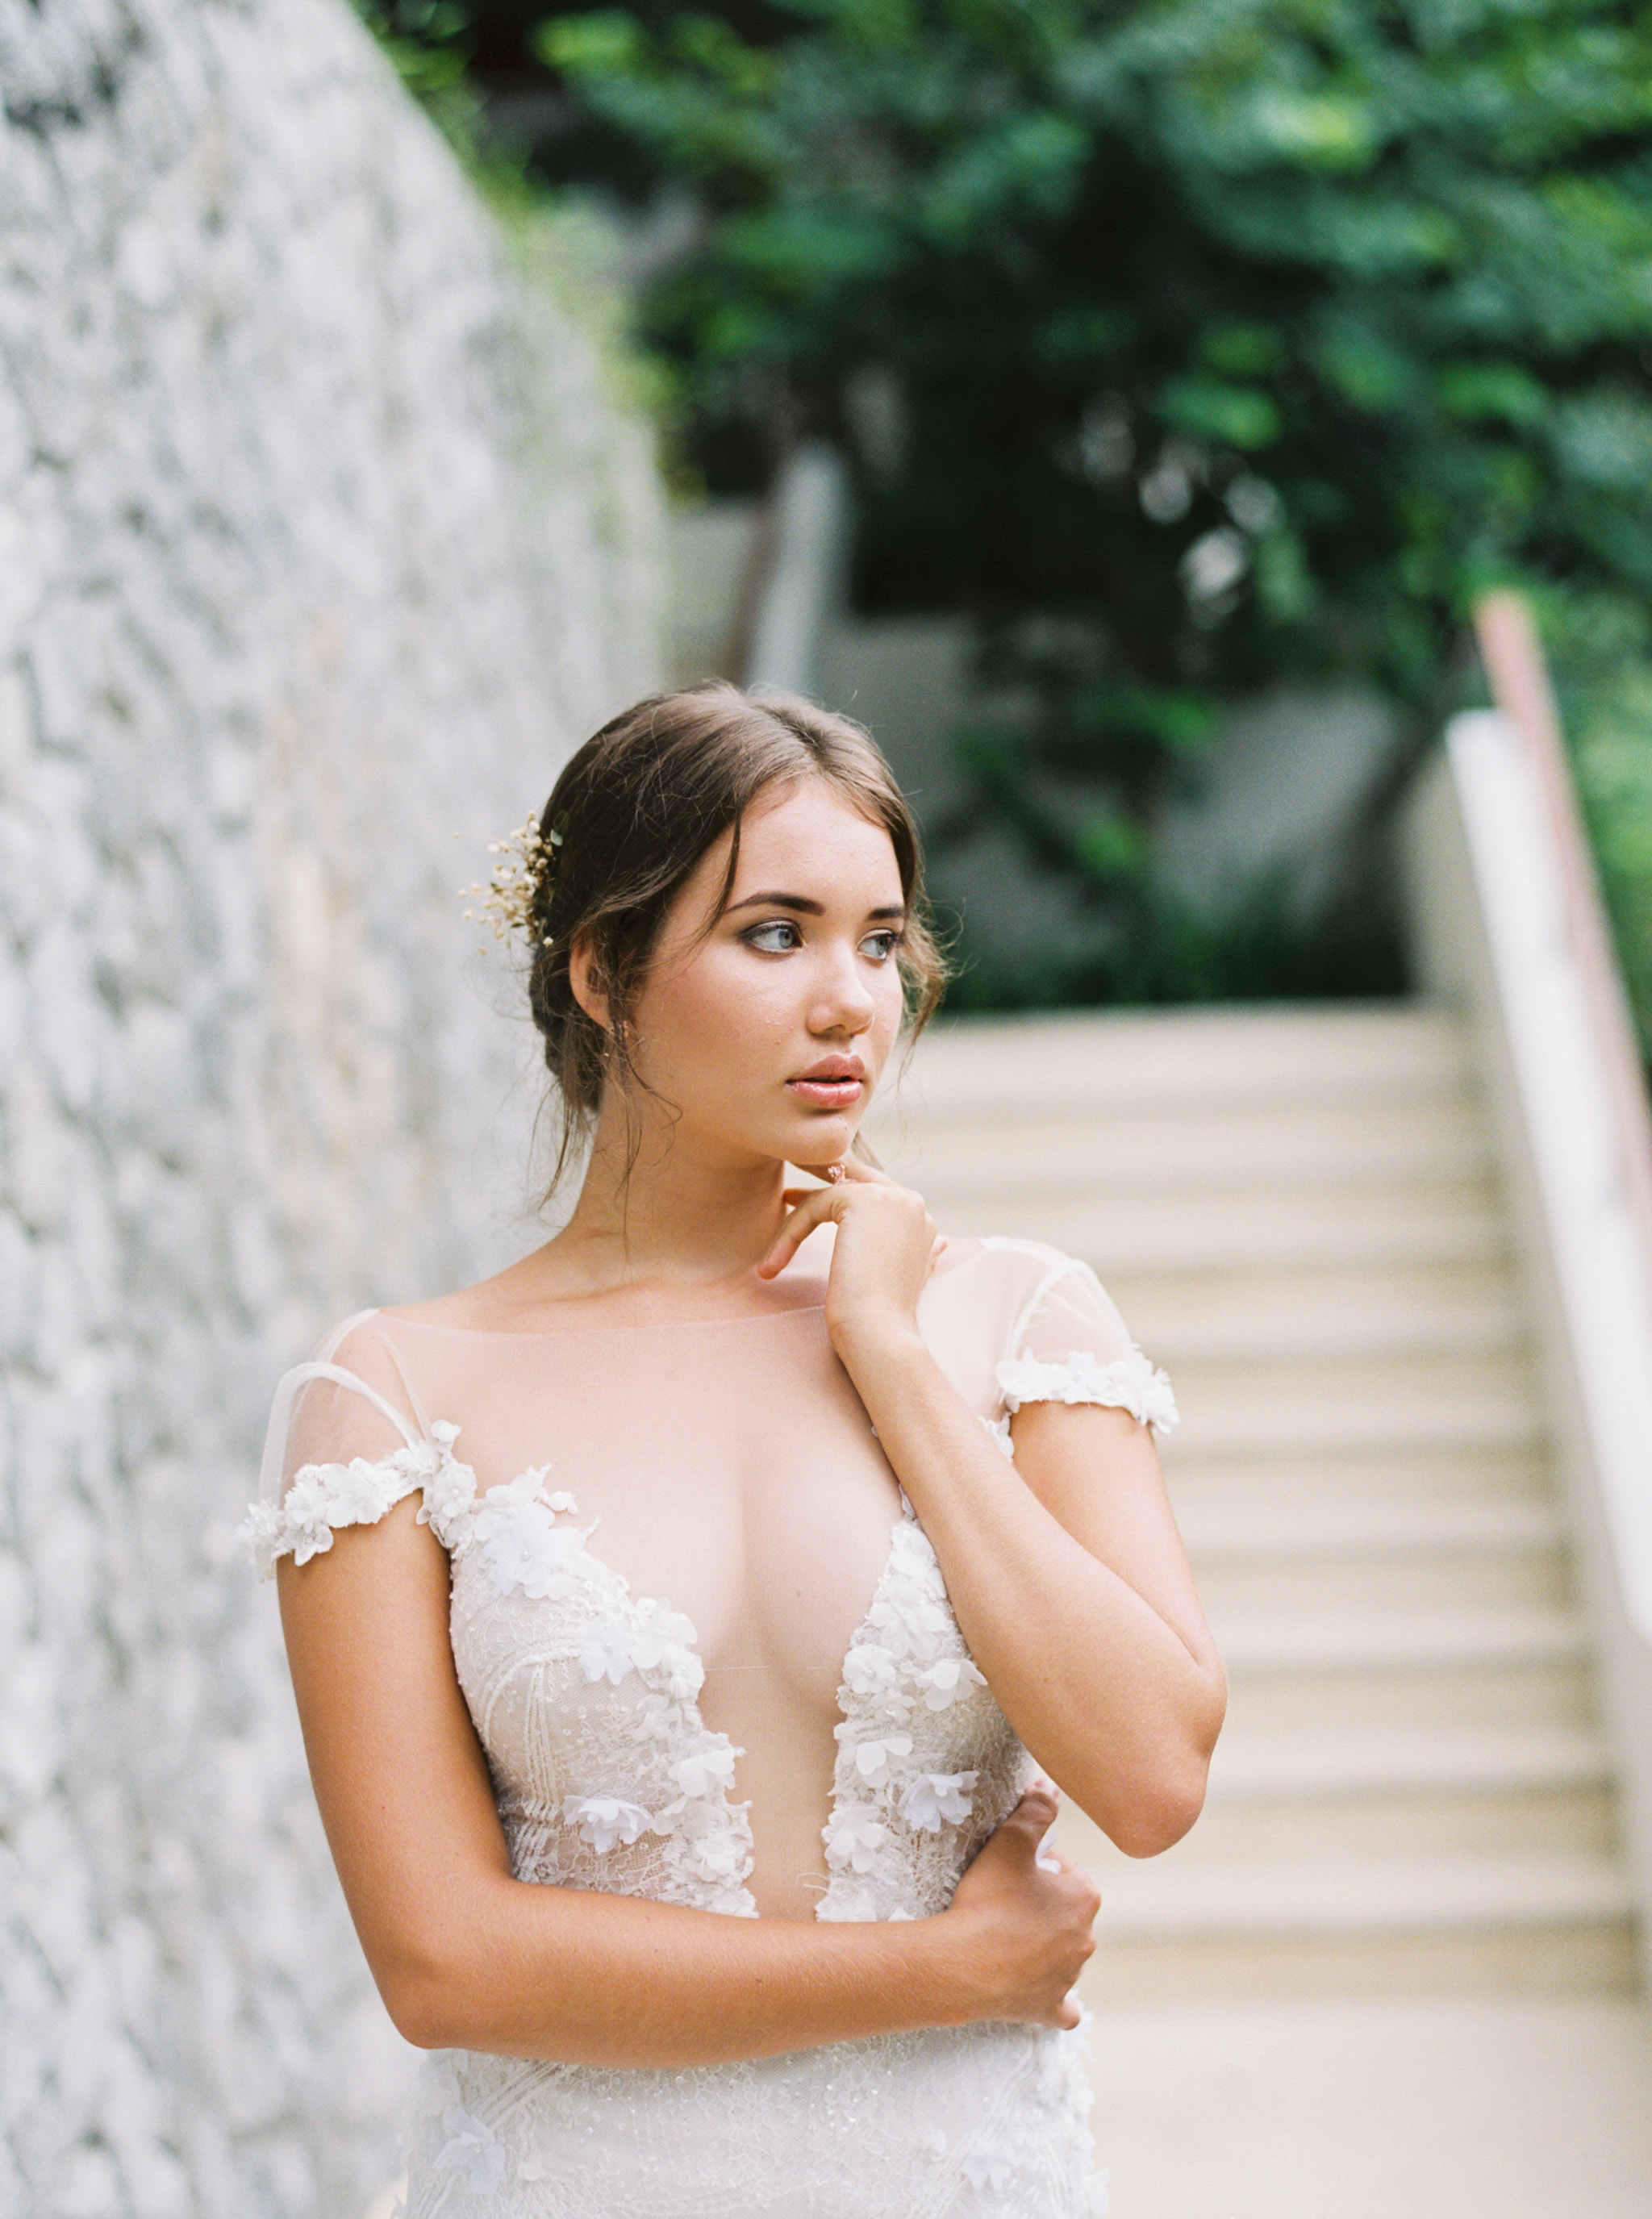 Destination Wedding at The Aquila Luxury Villas in Phuket Thailand Fine Art Film Wedding Photographer Sheri McMahon-00032-32.jpg